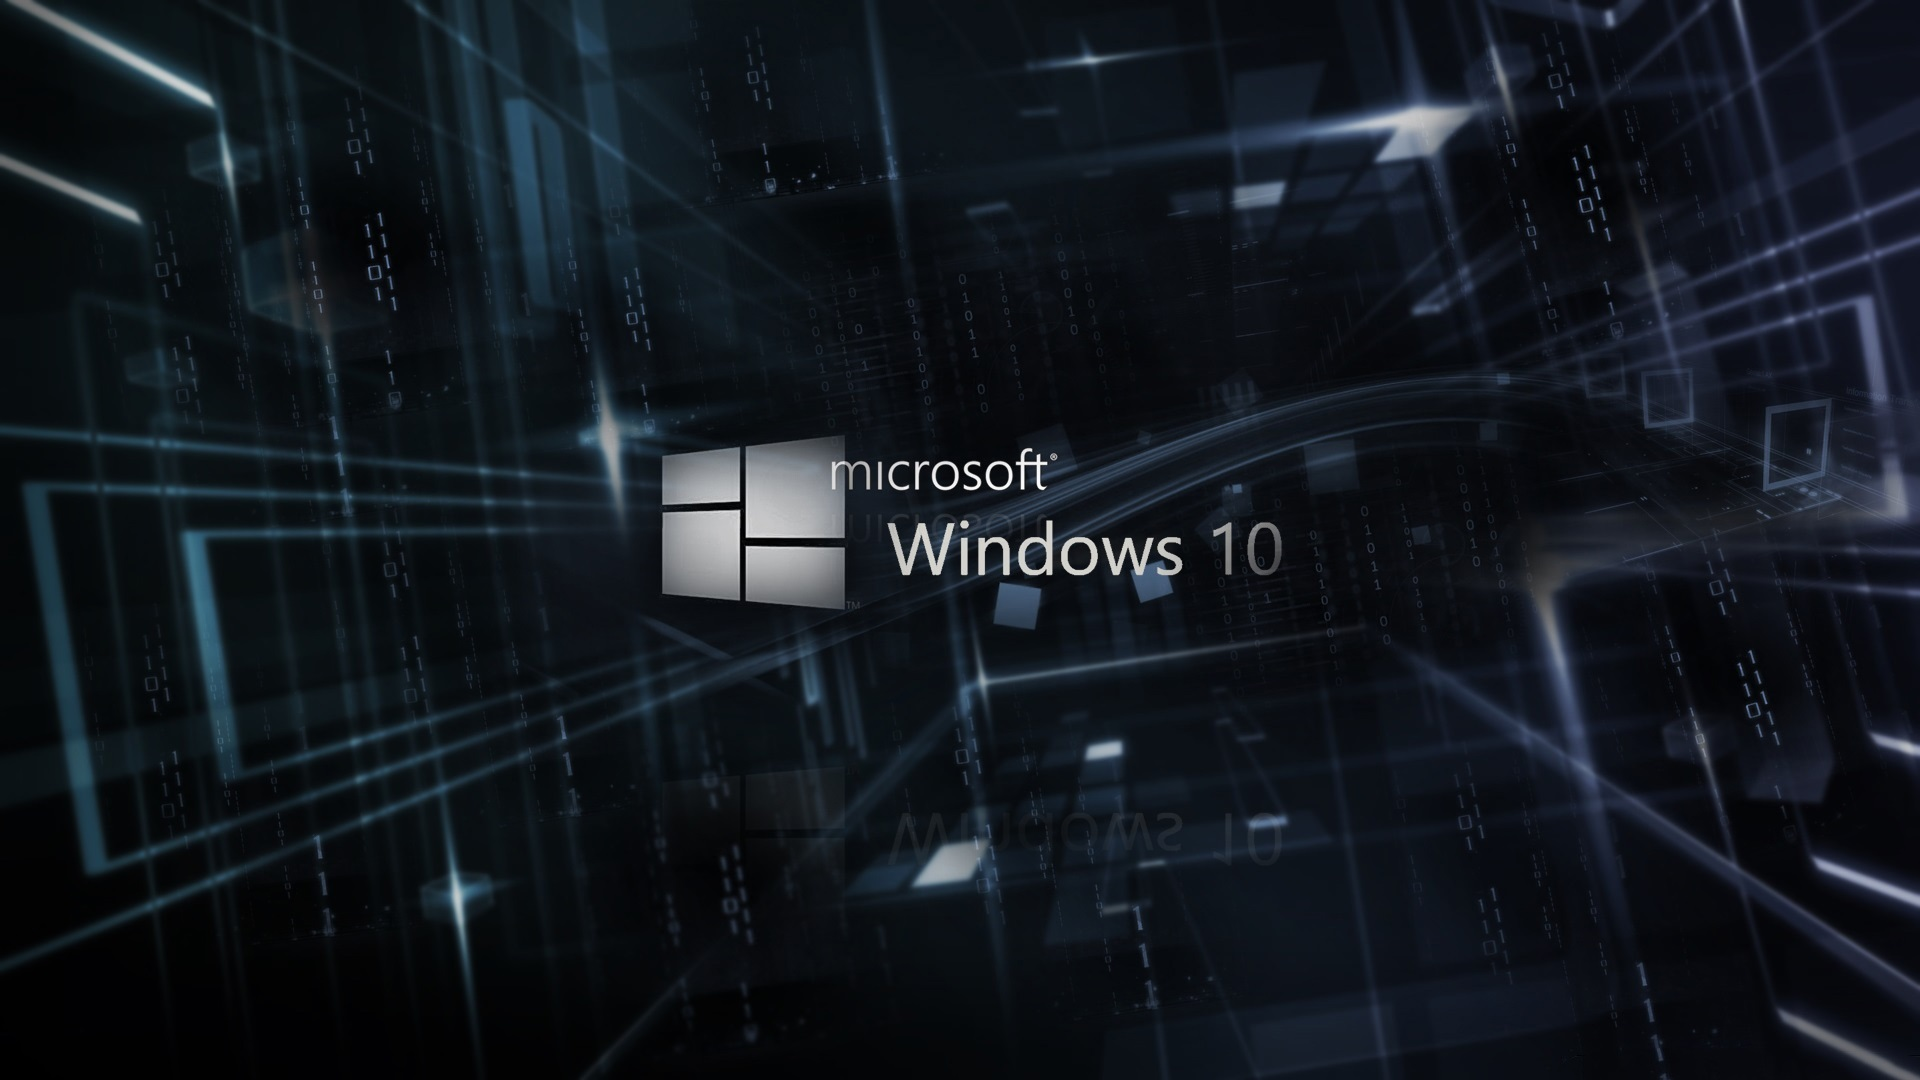 Wallpaper Microsoft Windows 10 Logo 3d Background 1920x1080 Full